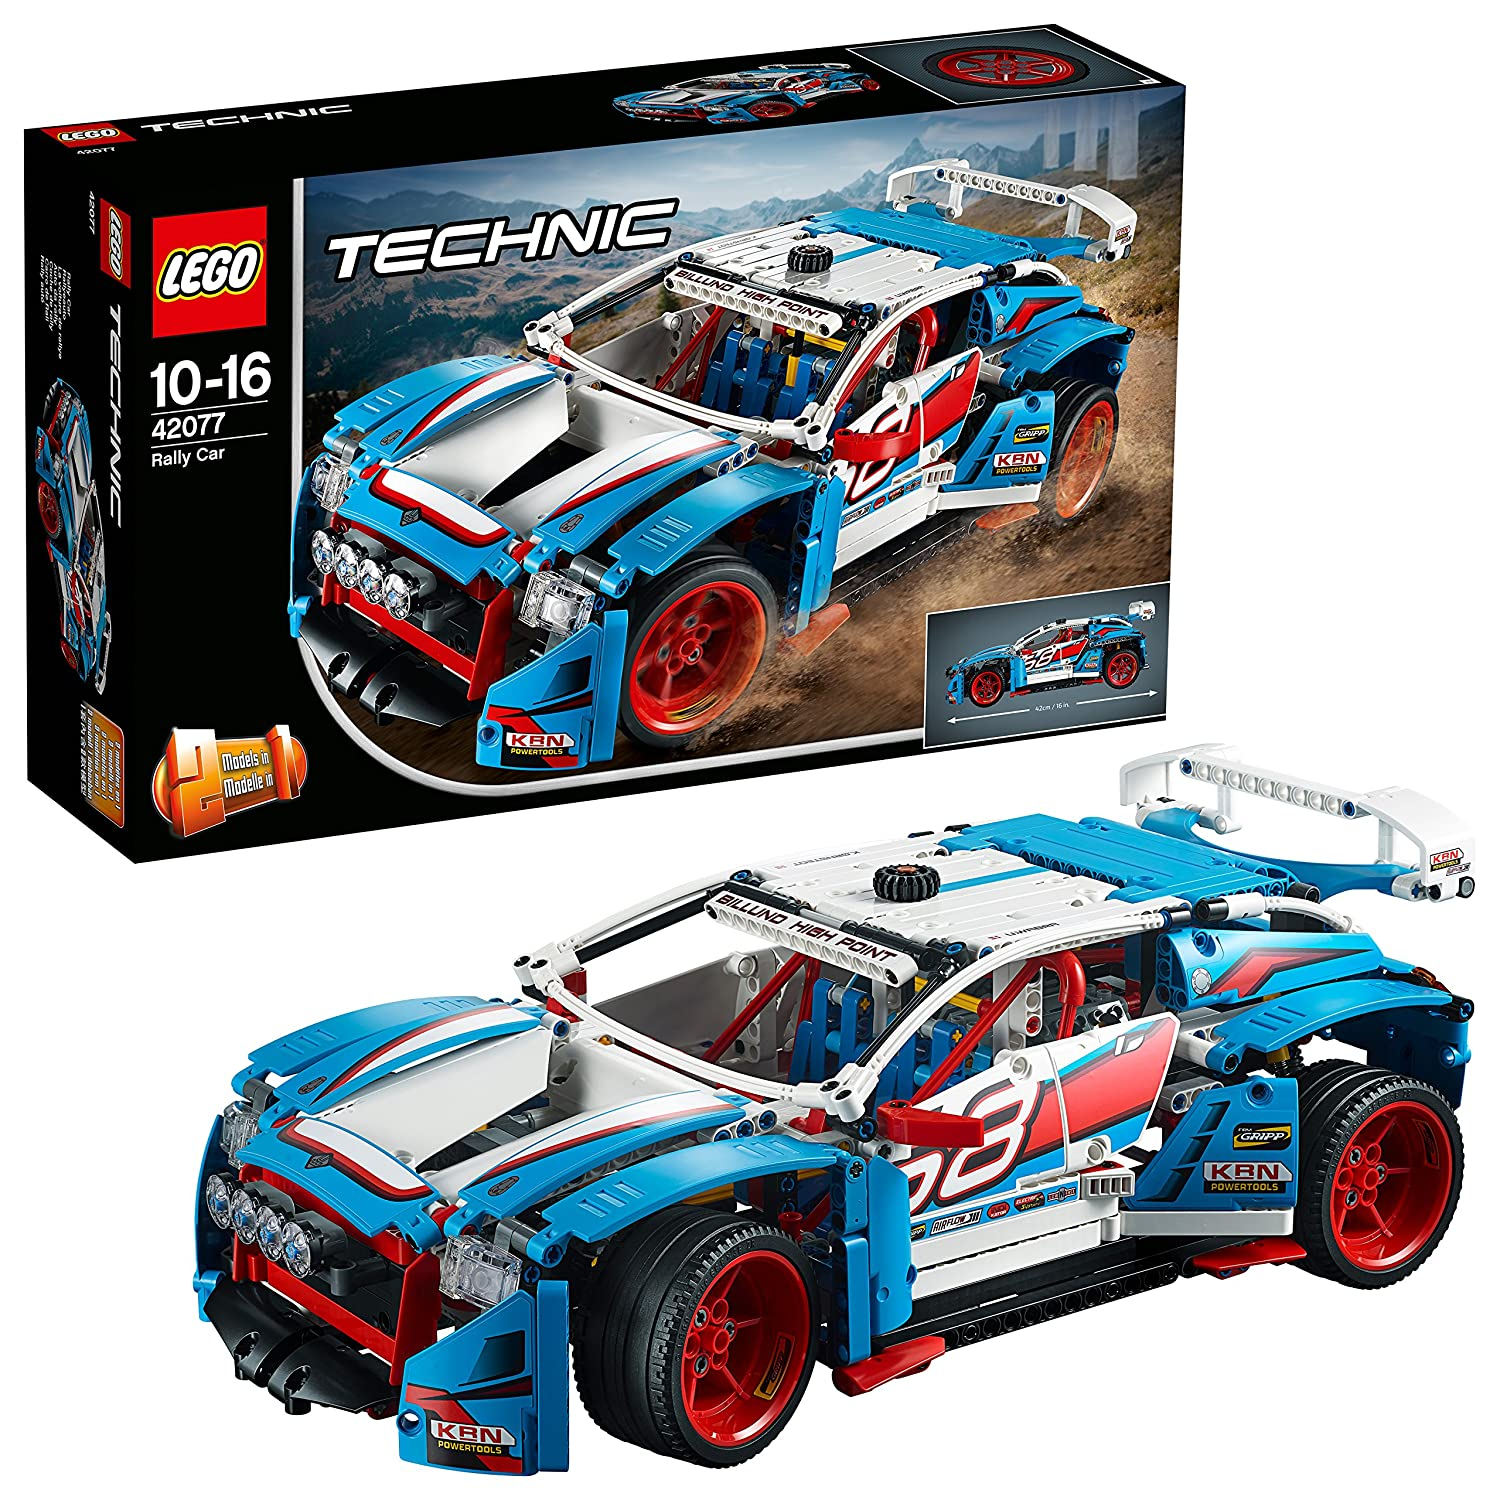 LEGO 42077 Technic Rally Car, 2-in-1 Buggy Model, Power Functions ...